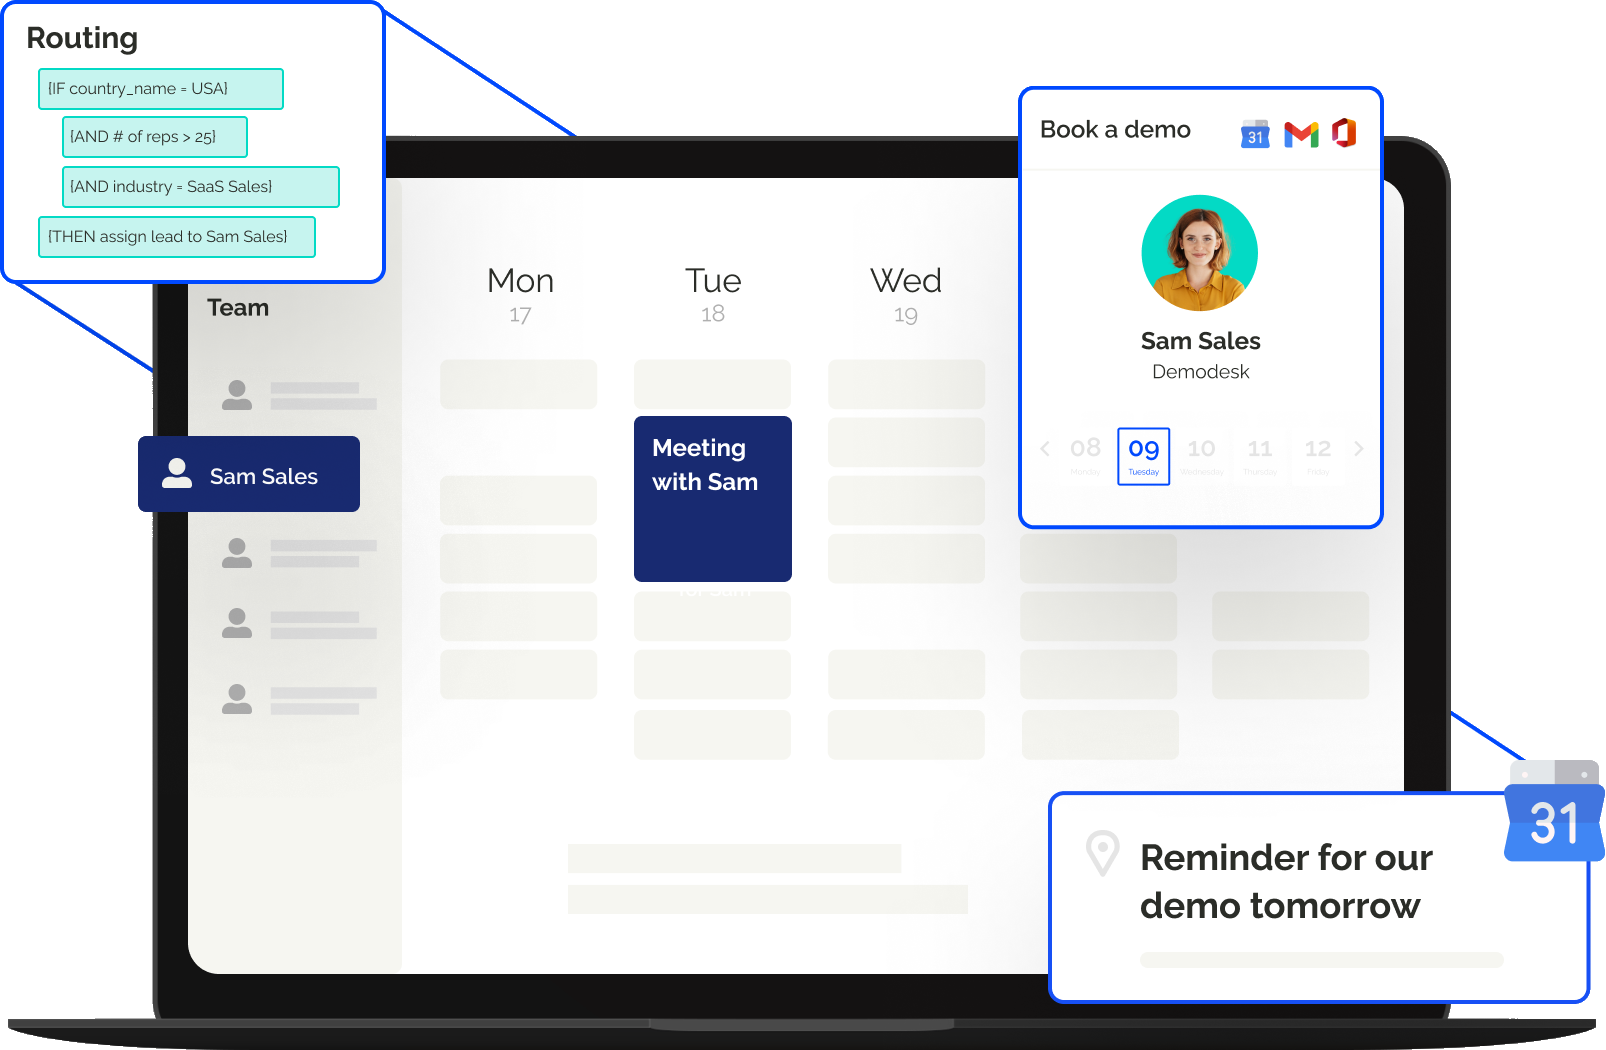 Automate scheduling with custom booking pages, team scheduling, lead routing, emails & calendar invites, & call reminders.